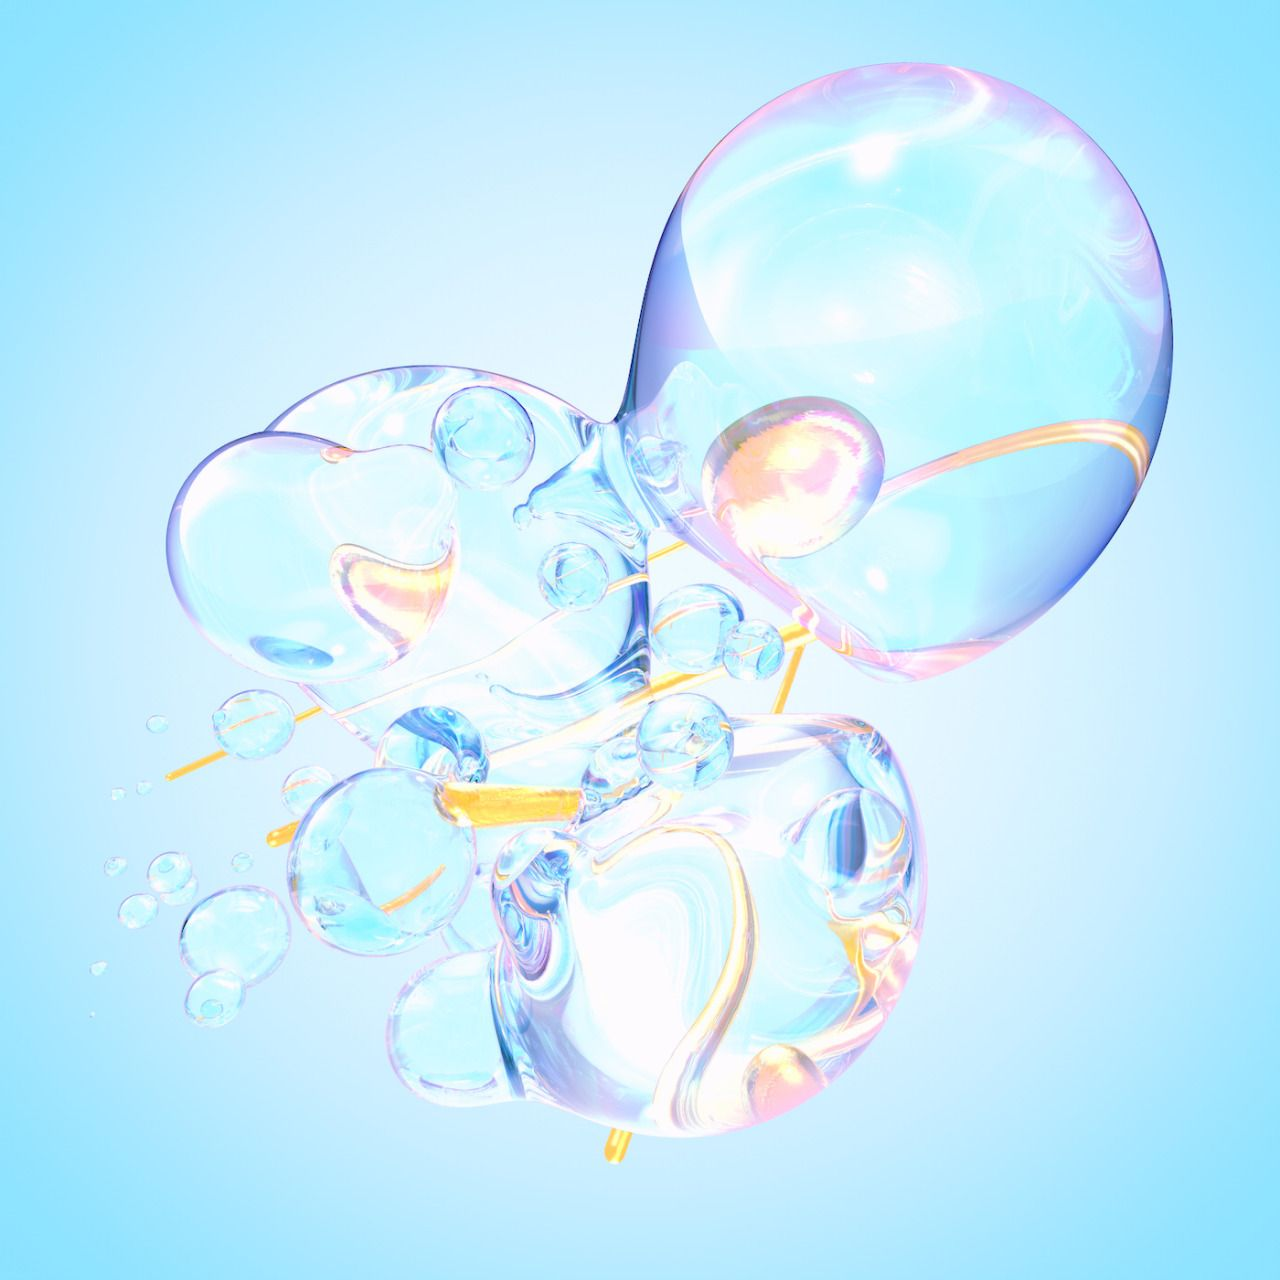 Cinema 4d transparenter hintergrund